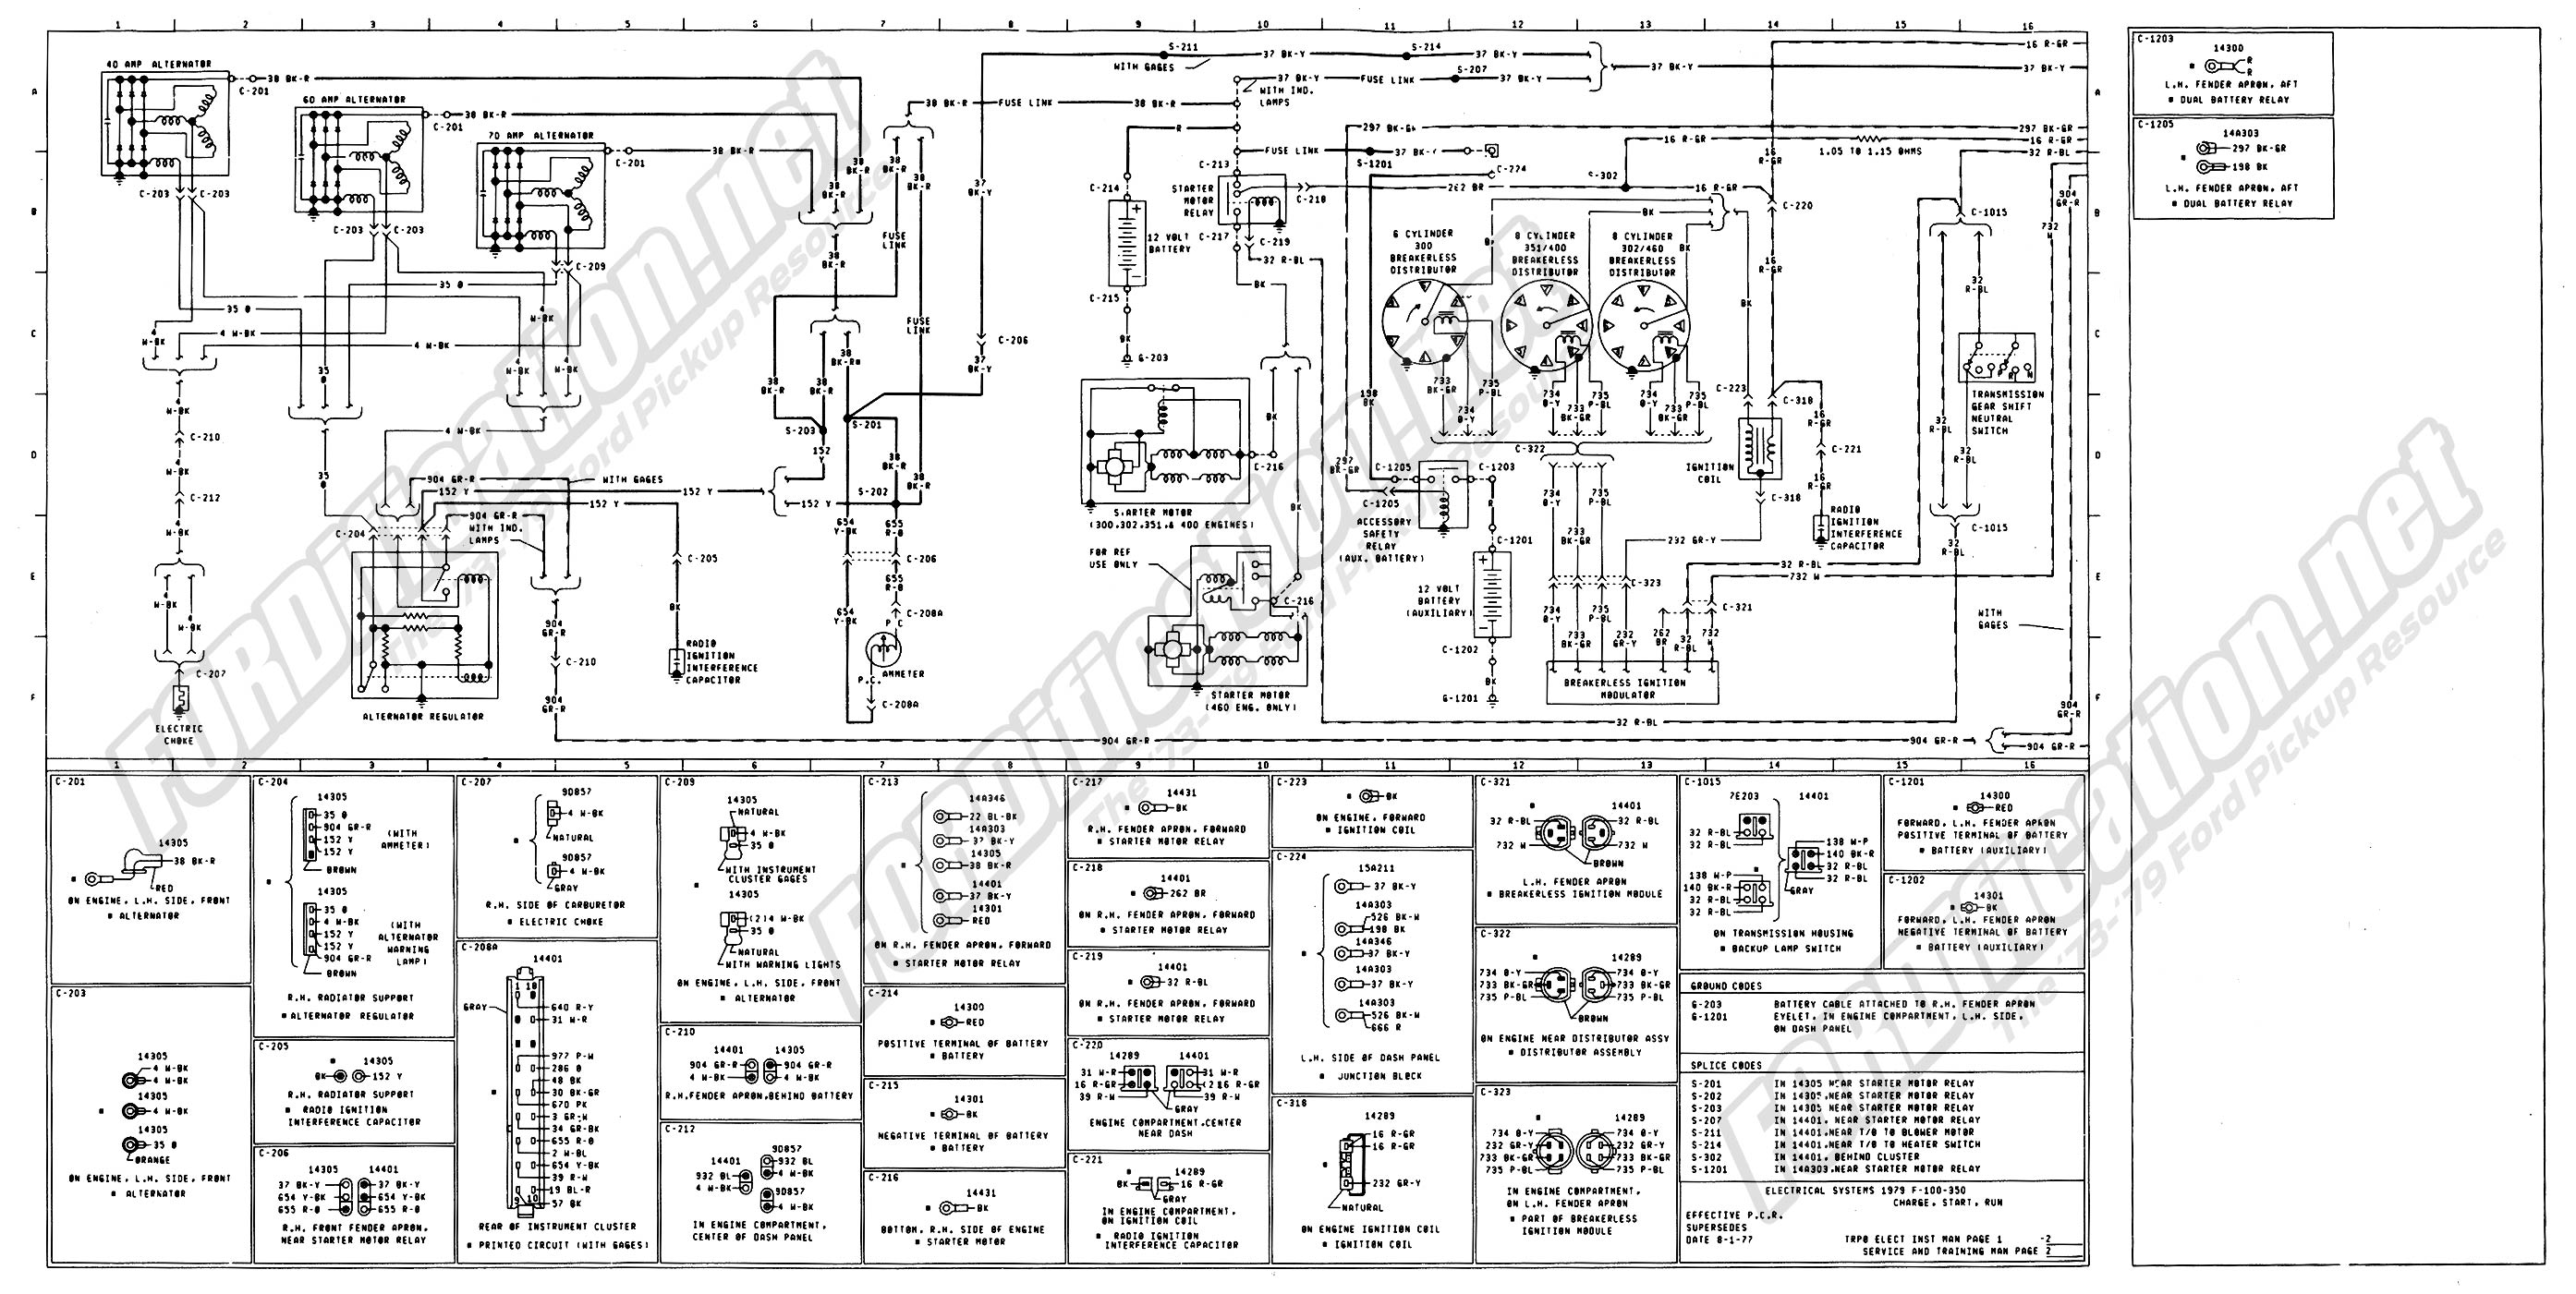 wiring_79master_2of9 1973 1979 ford truck wiring diagrams & schematics fordification net Ford F-350 Engine Schematic at mifinder.co